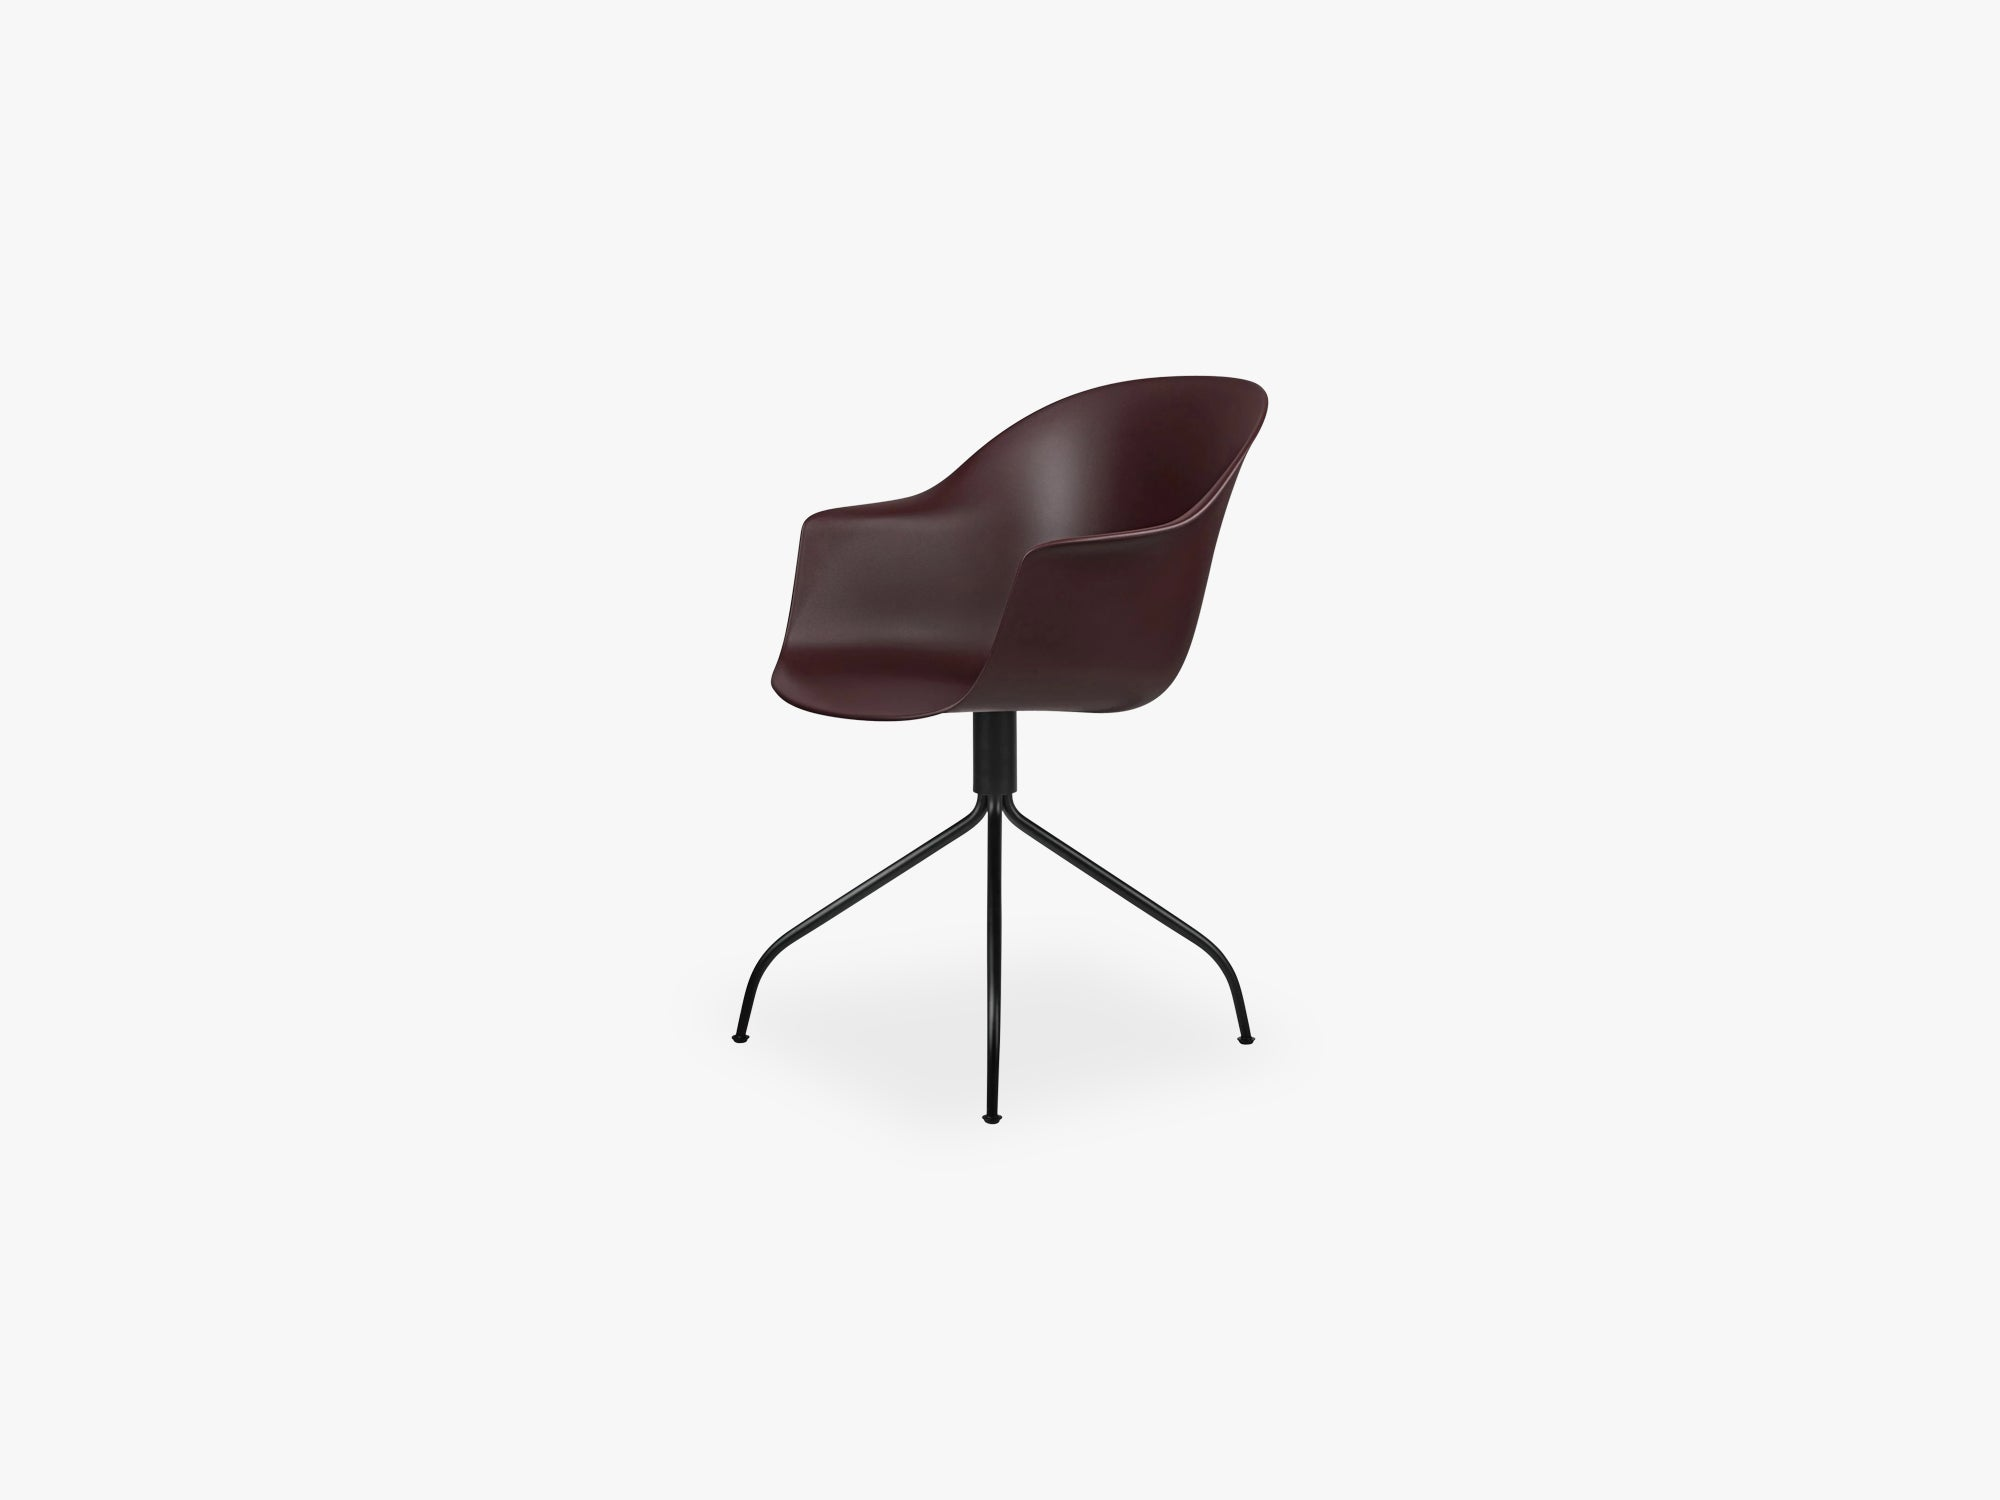 Bat Meeting Chair - Skal m Swivel base - Black Matt, Dark Pink fra GUBI